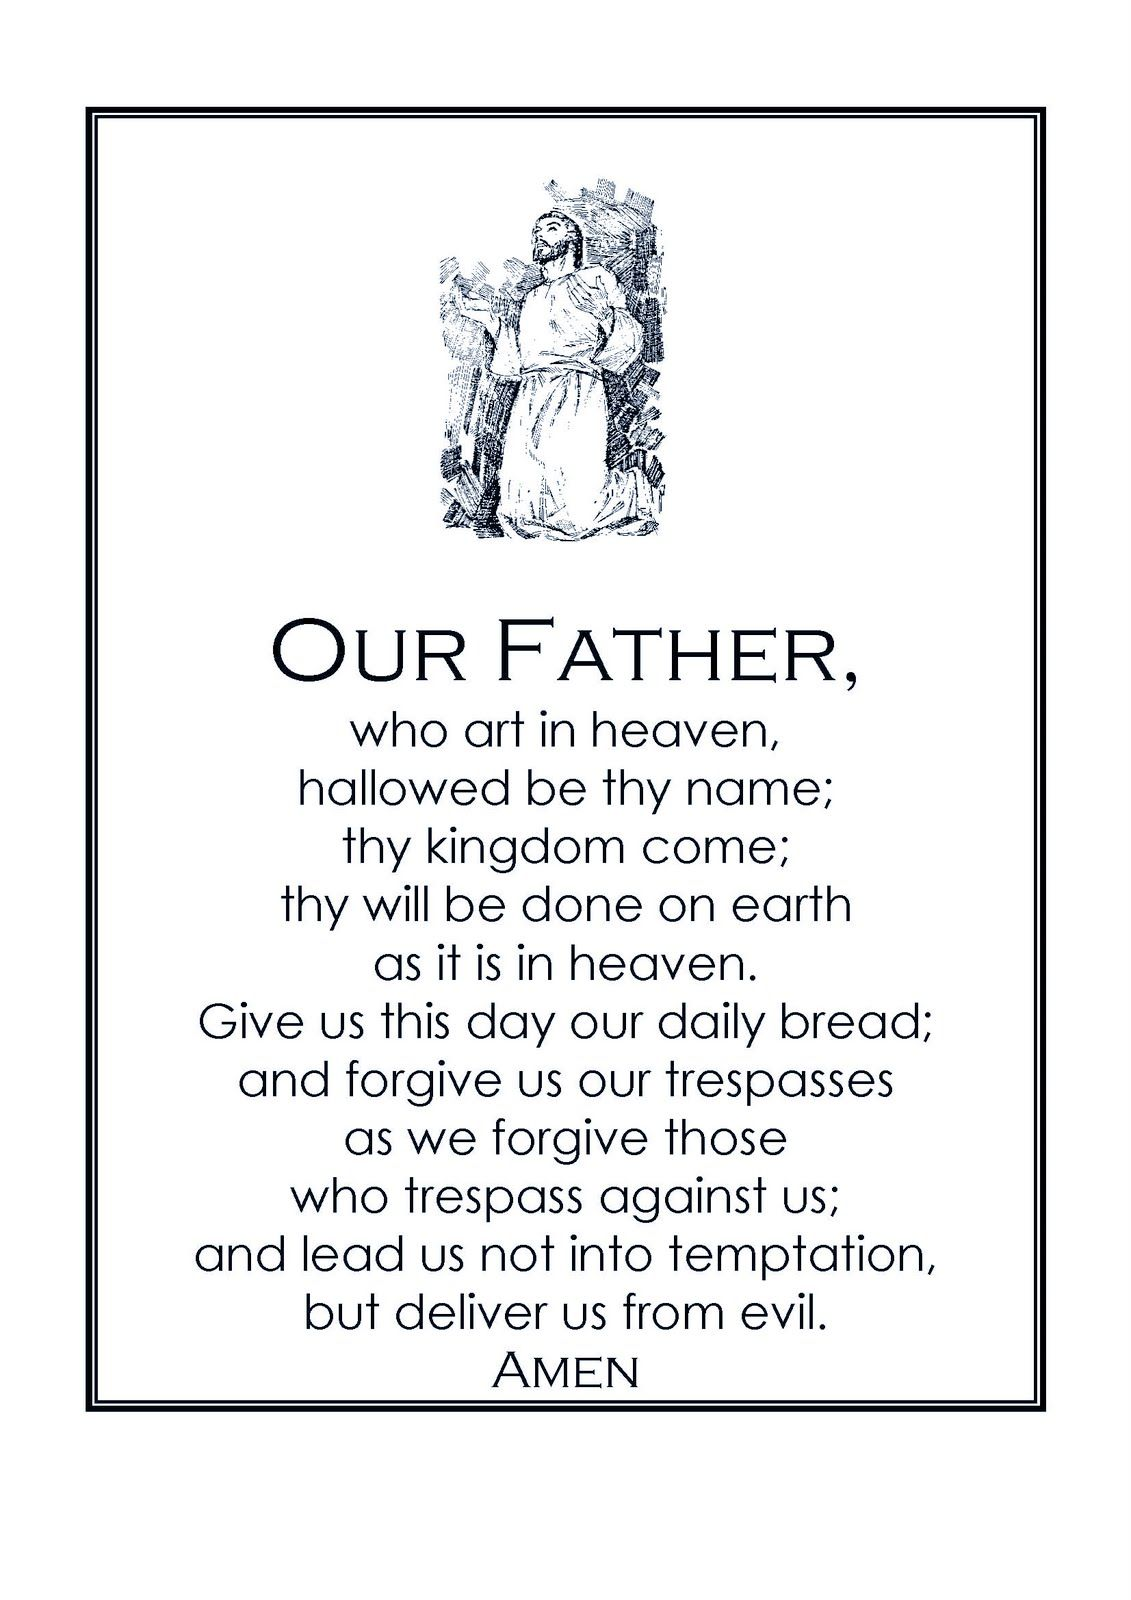 Our Father Prayer